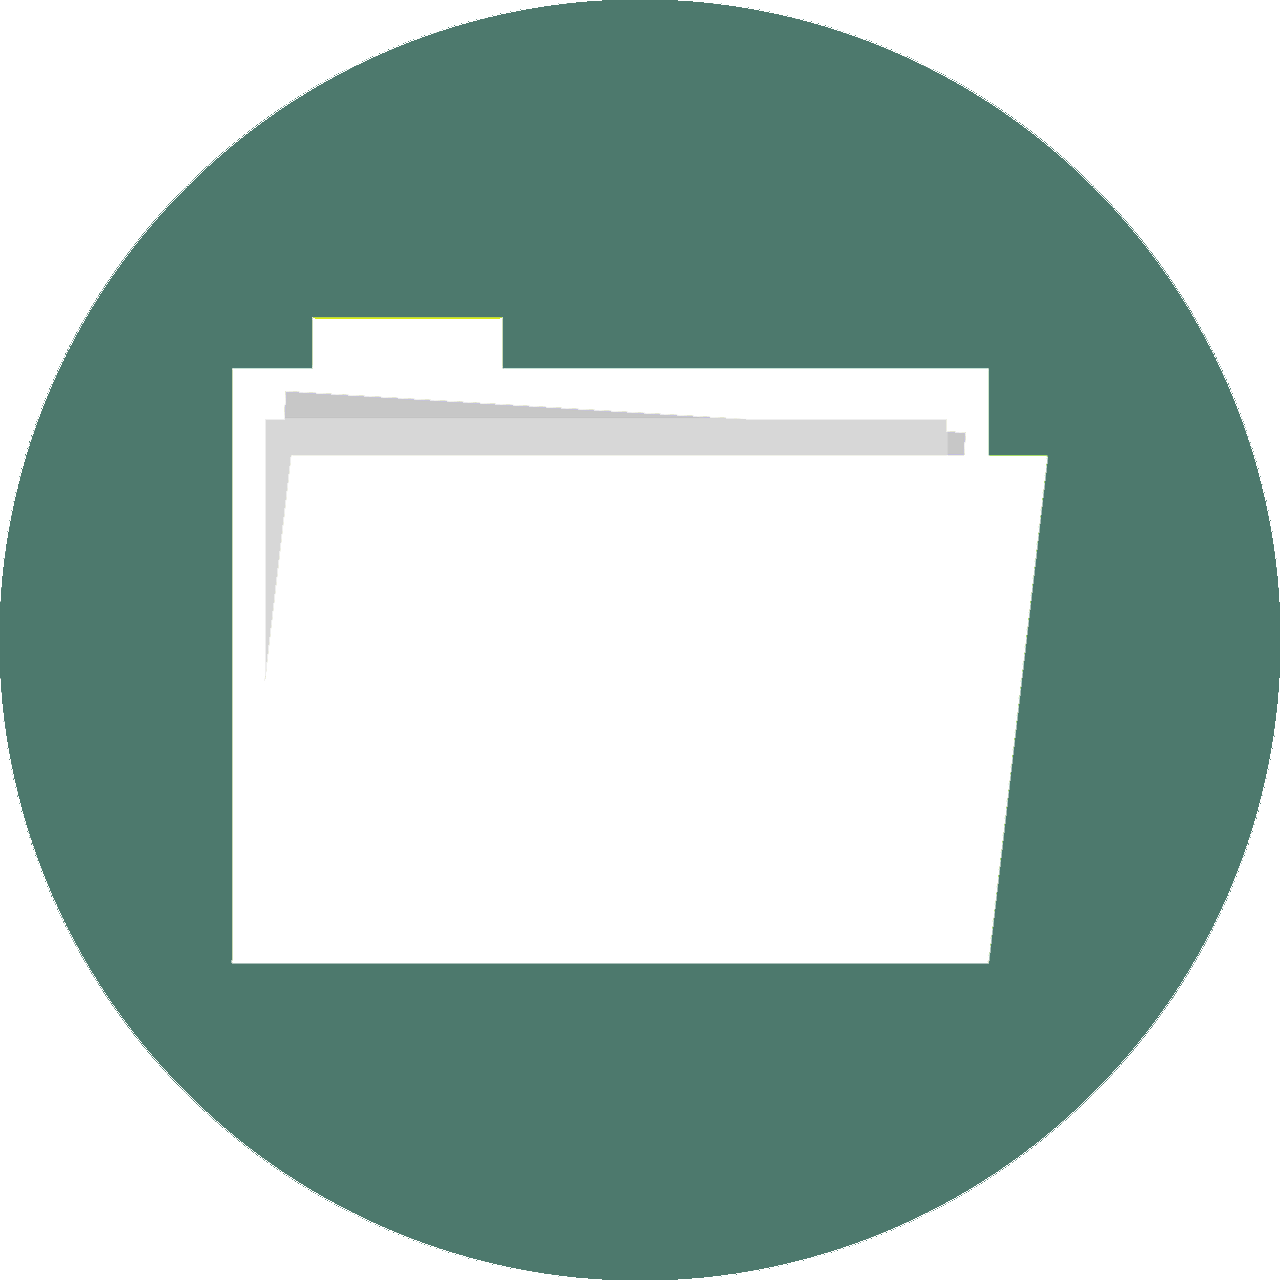 An icon of a file